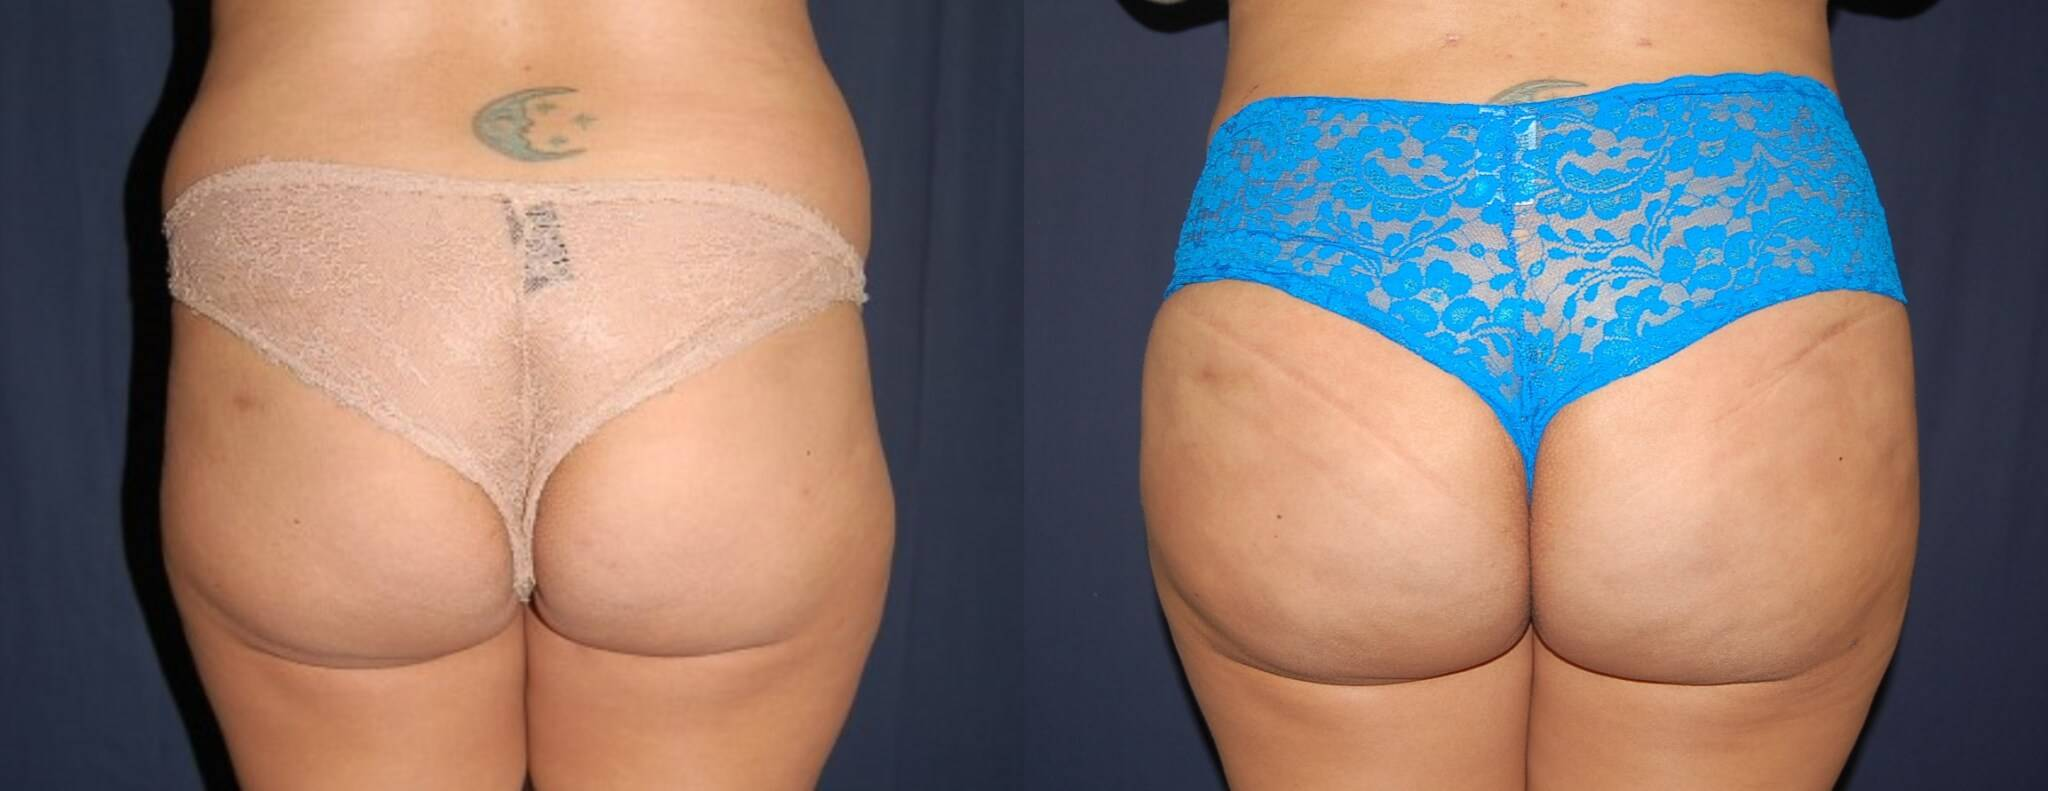 Brazilian Butt Lift Before And After Pictures 111